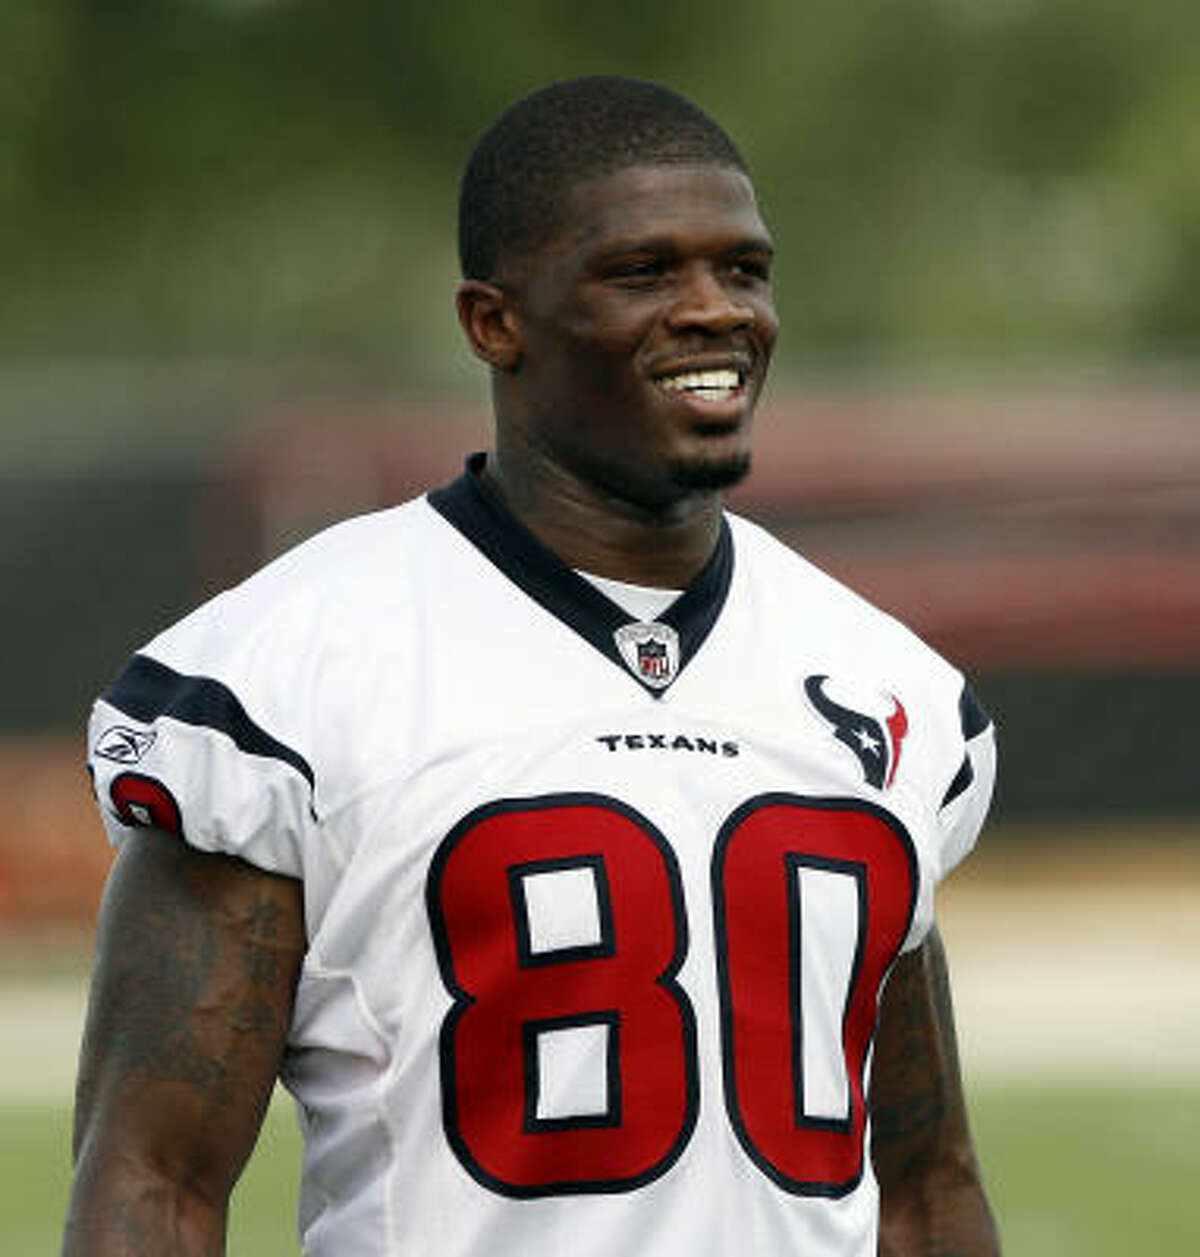 Andre Johnson has established himself as one of the best receivers in the NFL wearing the same No. 80 that Jerry Rice wore. More on Texans numbers.